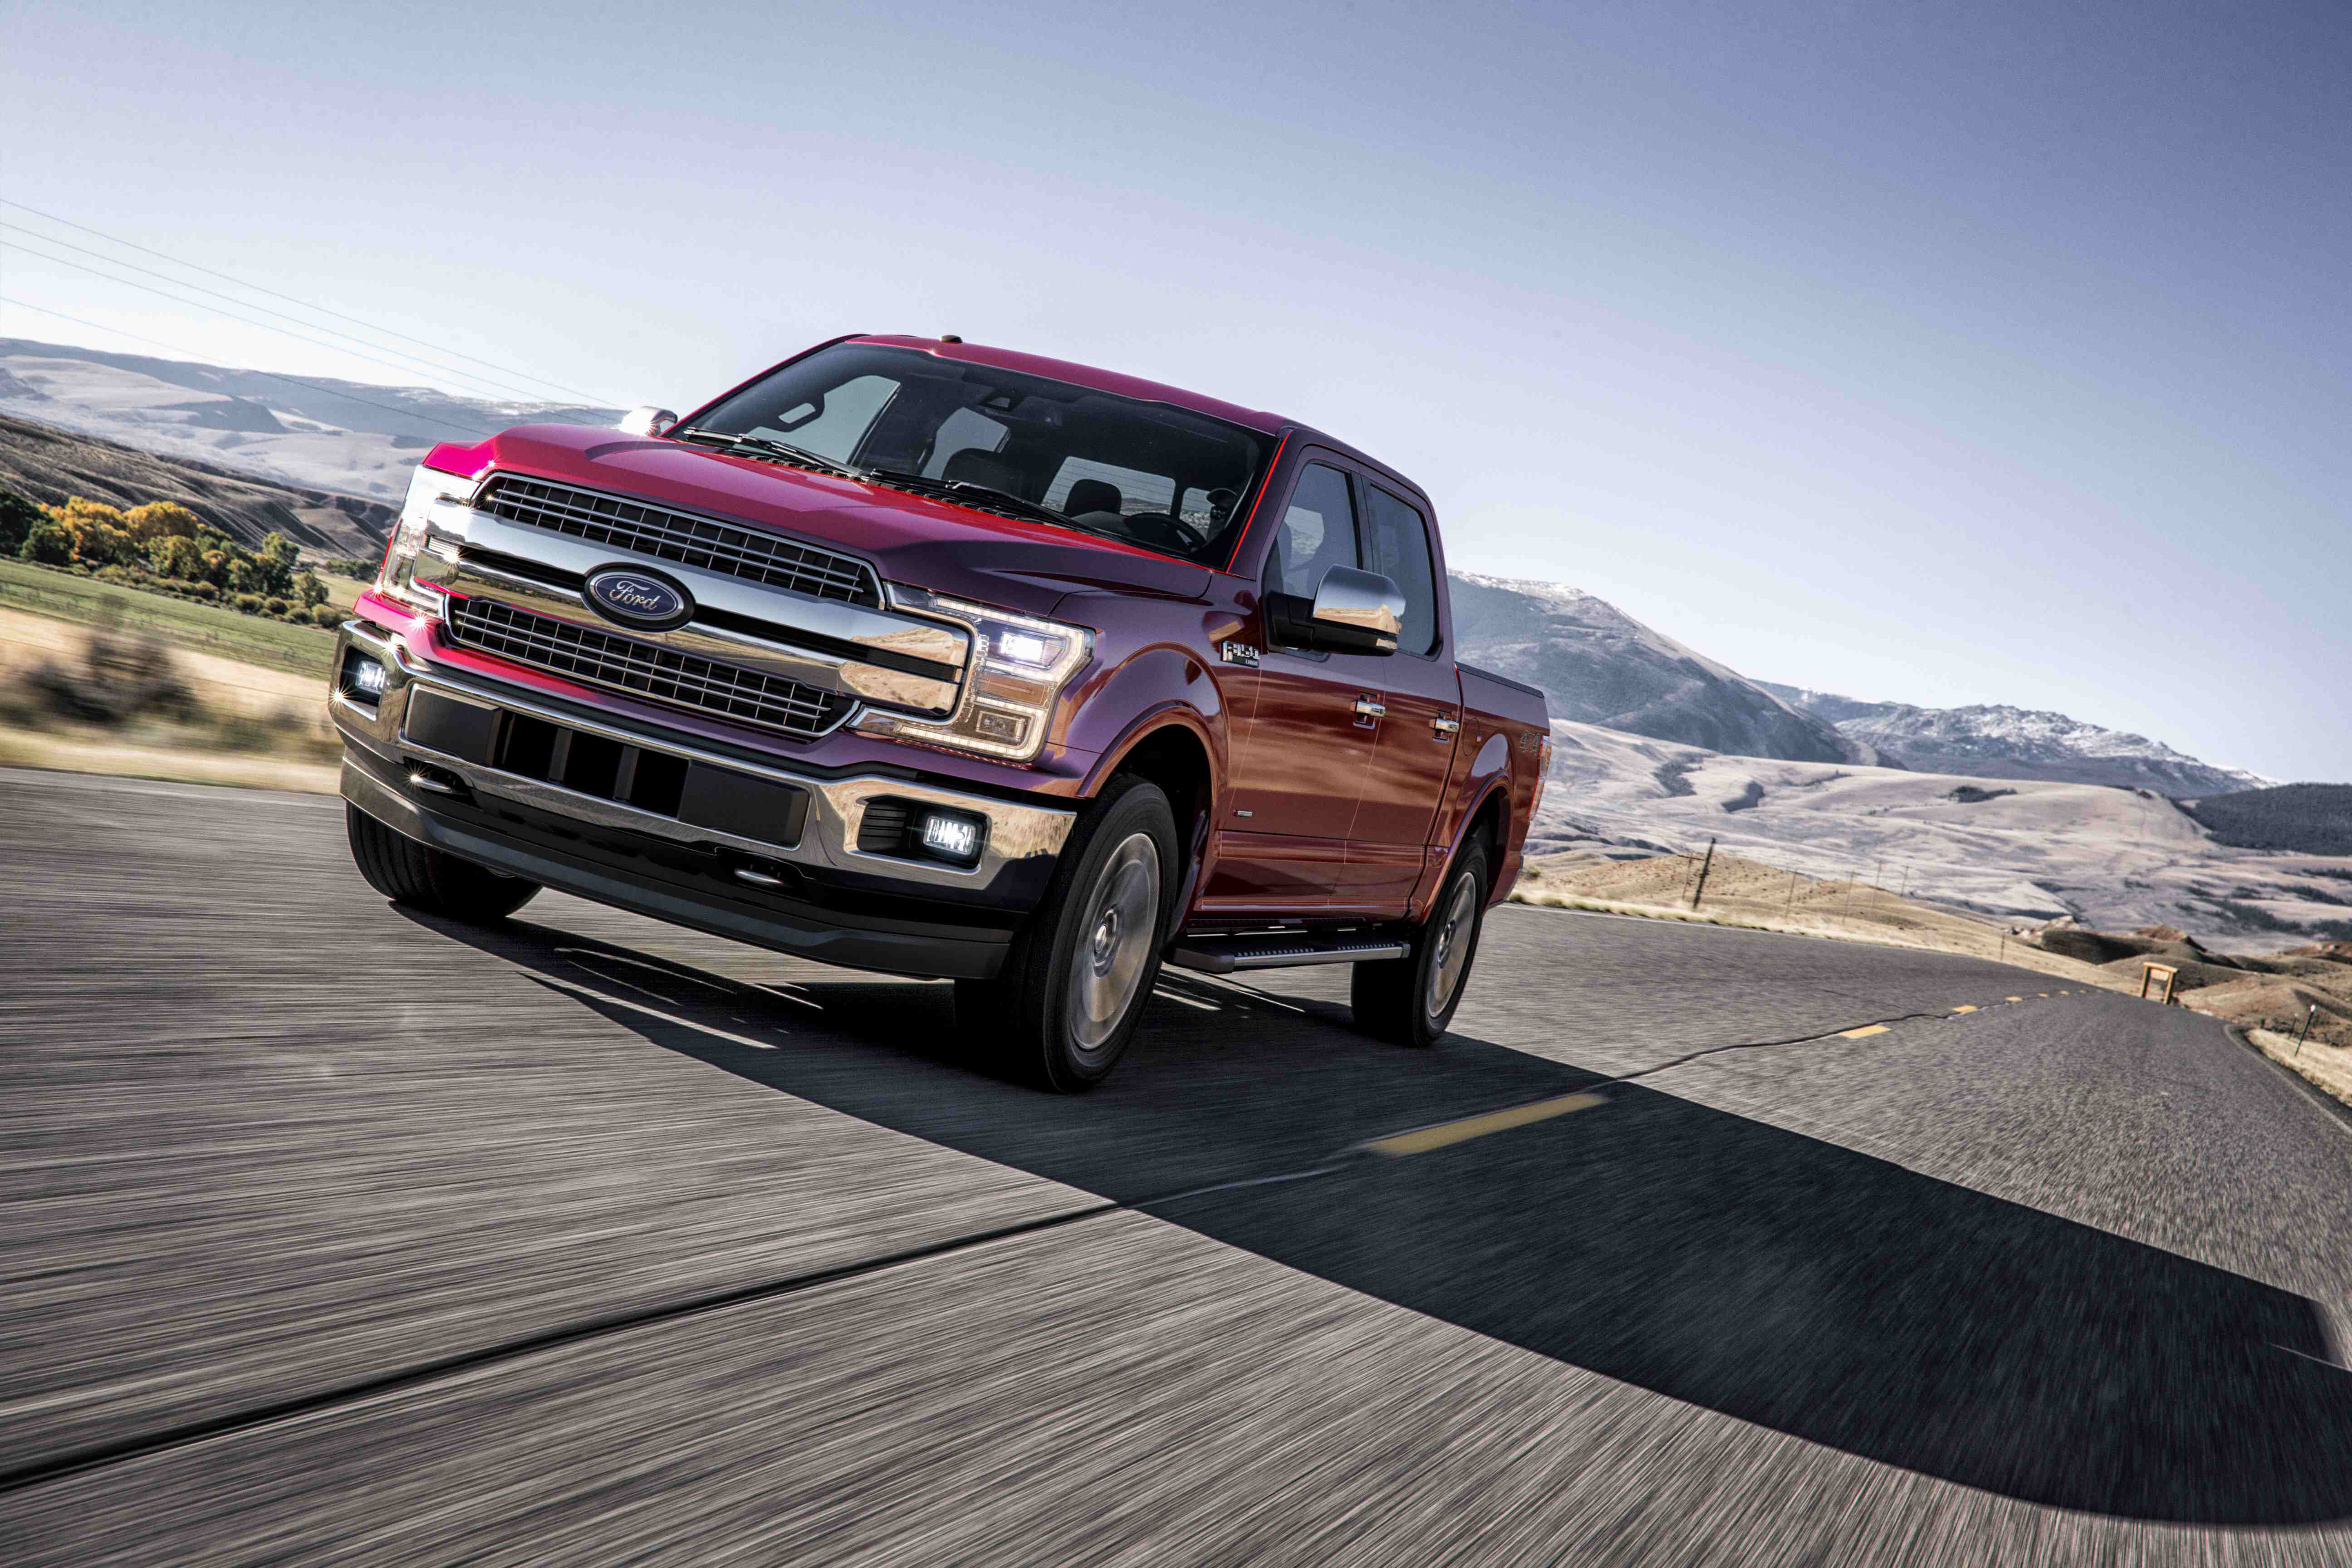 Ford recalling thousands of 2018 F-150 trucks over concern